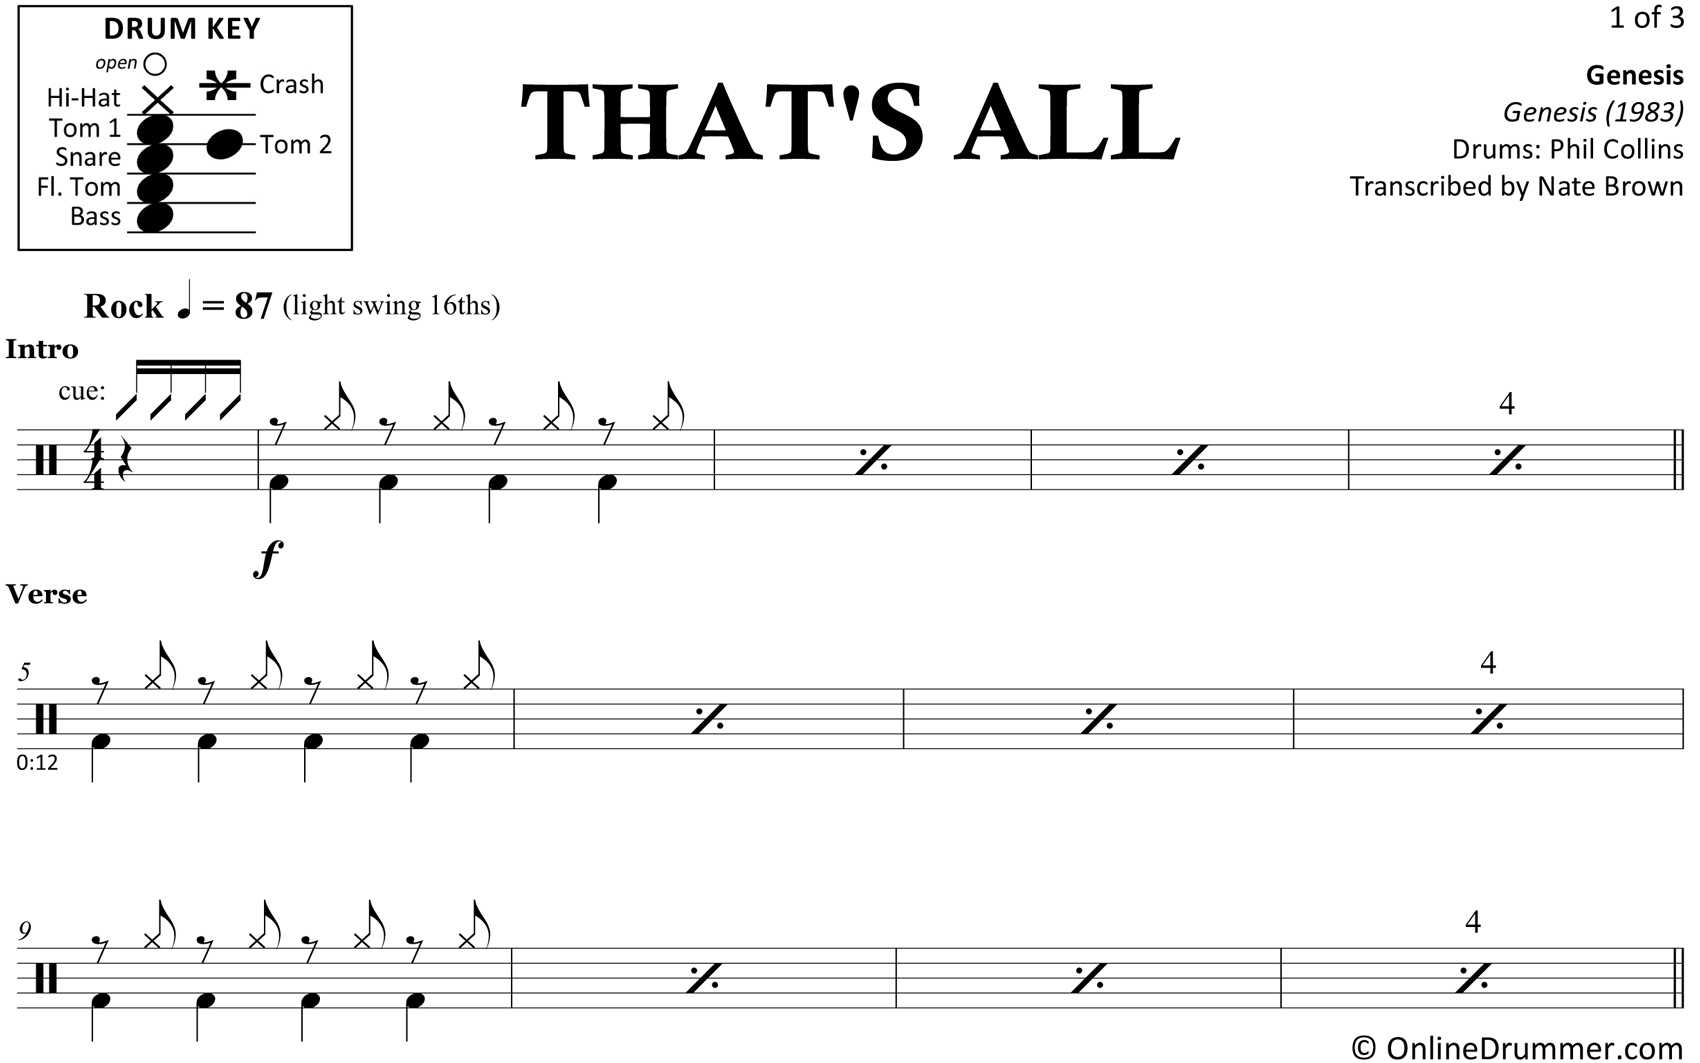 That's All - Genesis - Drum Sheet Music